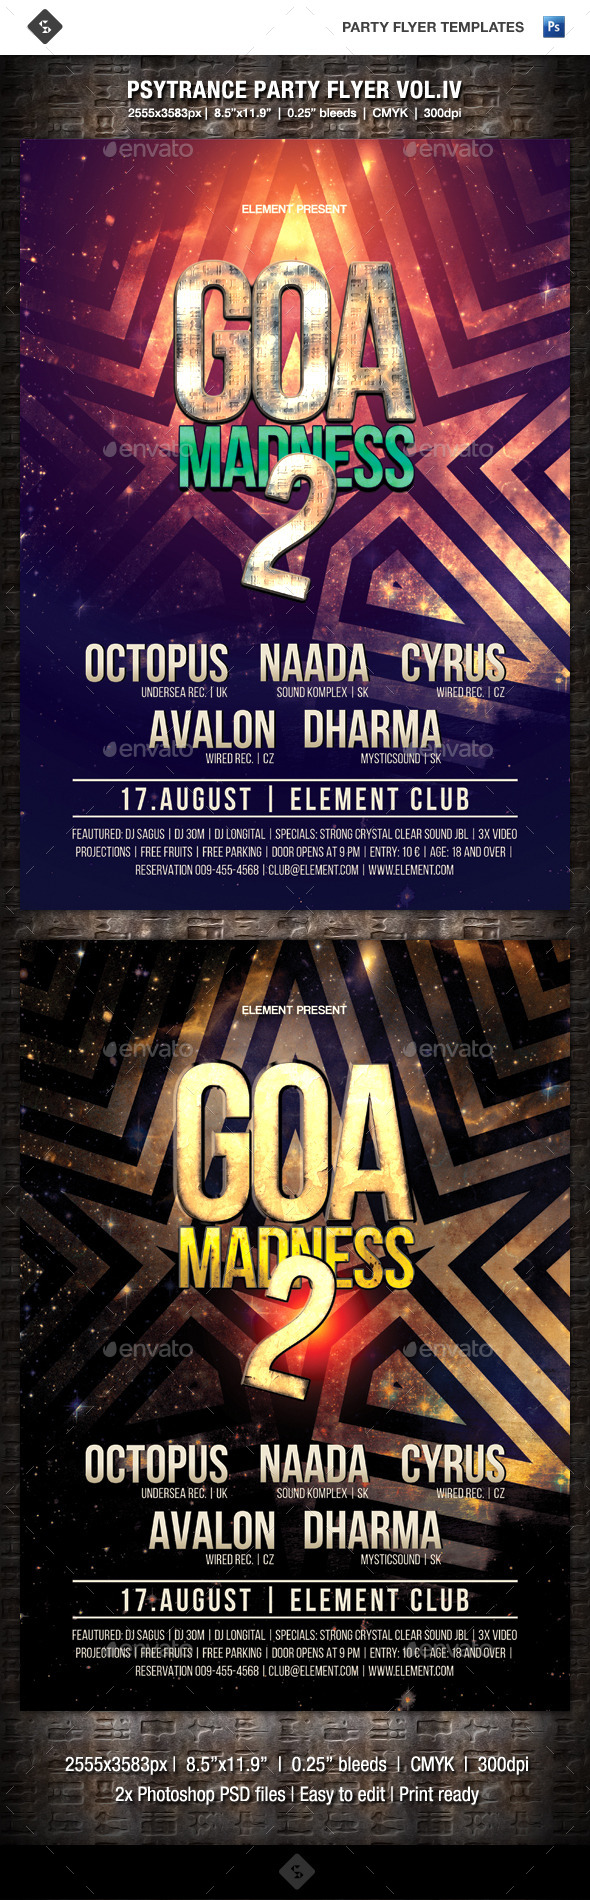 Psytrance Party Flyer Vol.4 - Goa Madness 2 - Clubs & Parties Events